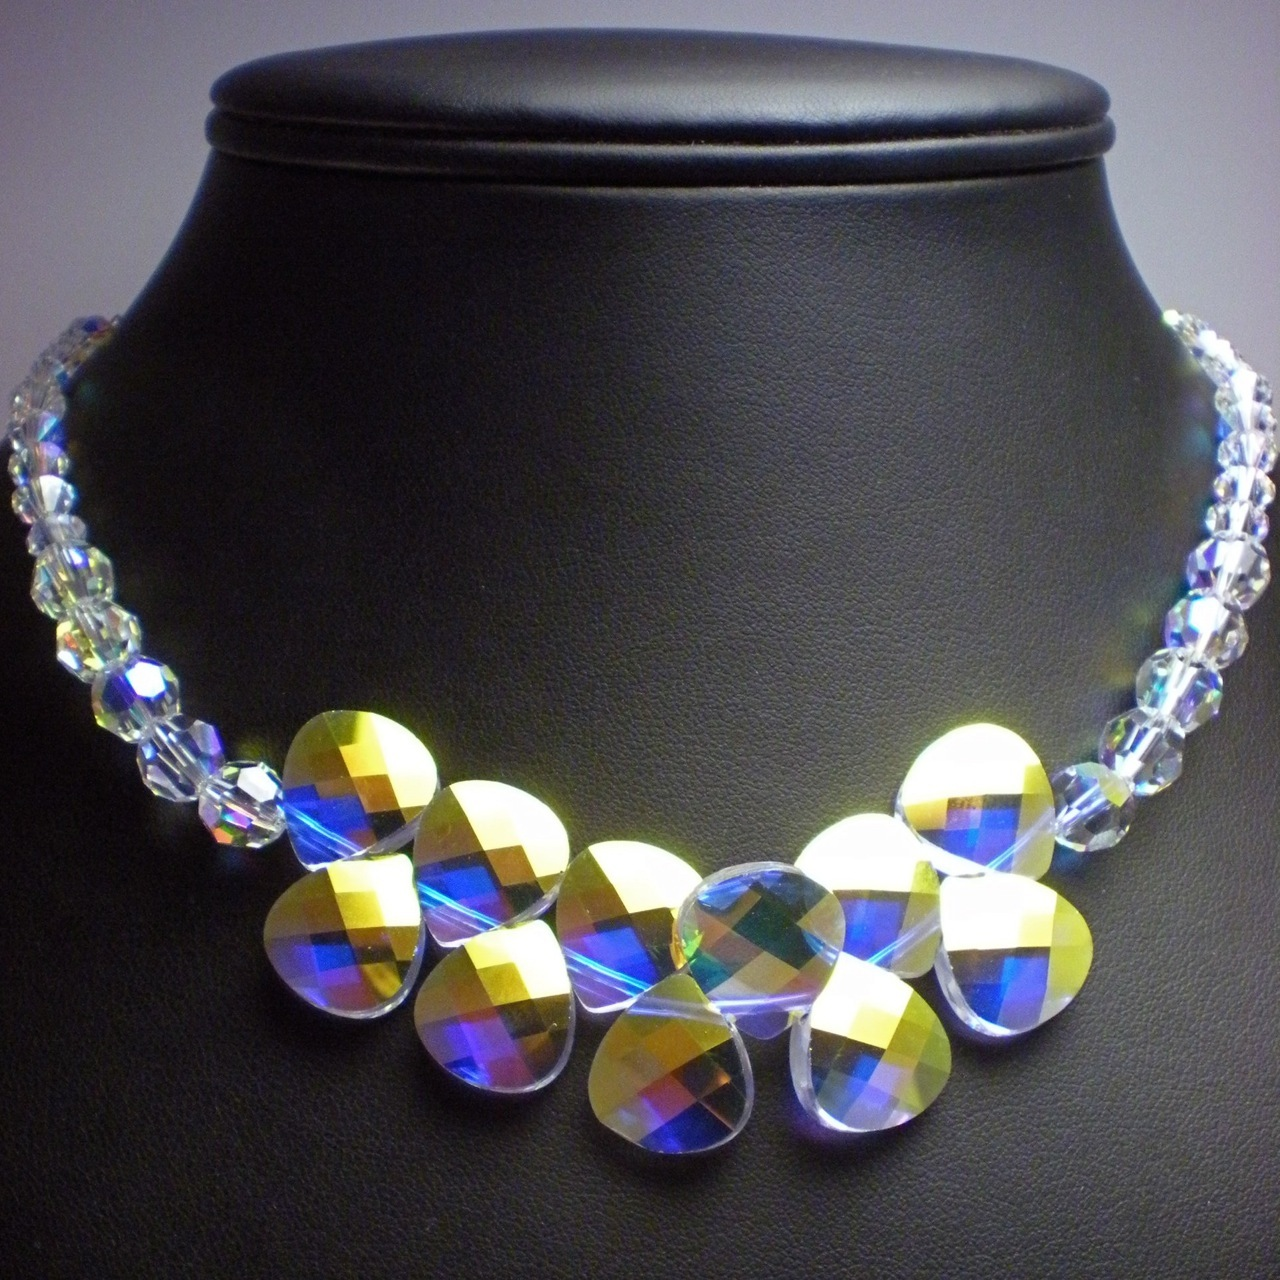 Jewelry, Bridesmaids, Bridesmaids Dresses, Fashion, white, yellow, purple, blue, green, silver, Necklaces, Modern, Bride, Bridesmaid, Bridal, Crystal, Necklace, Swarovski, Bead, Teardrop, Bling, Dana saylor designs, Pendant, Briolette, Rainbow, Clear, Ab, Adjustable, Modern Wedding Dresses